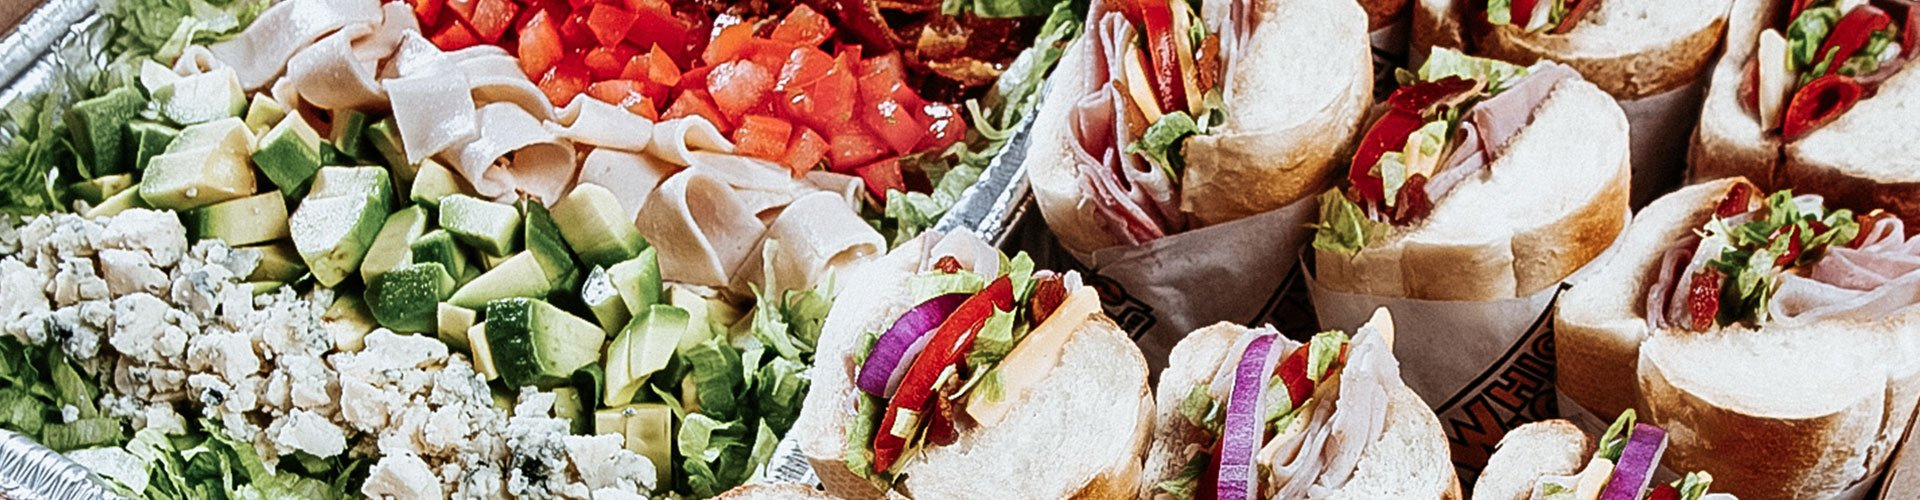 Which Wich sandwiches and salad catering